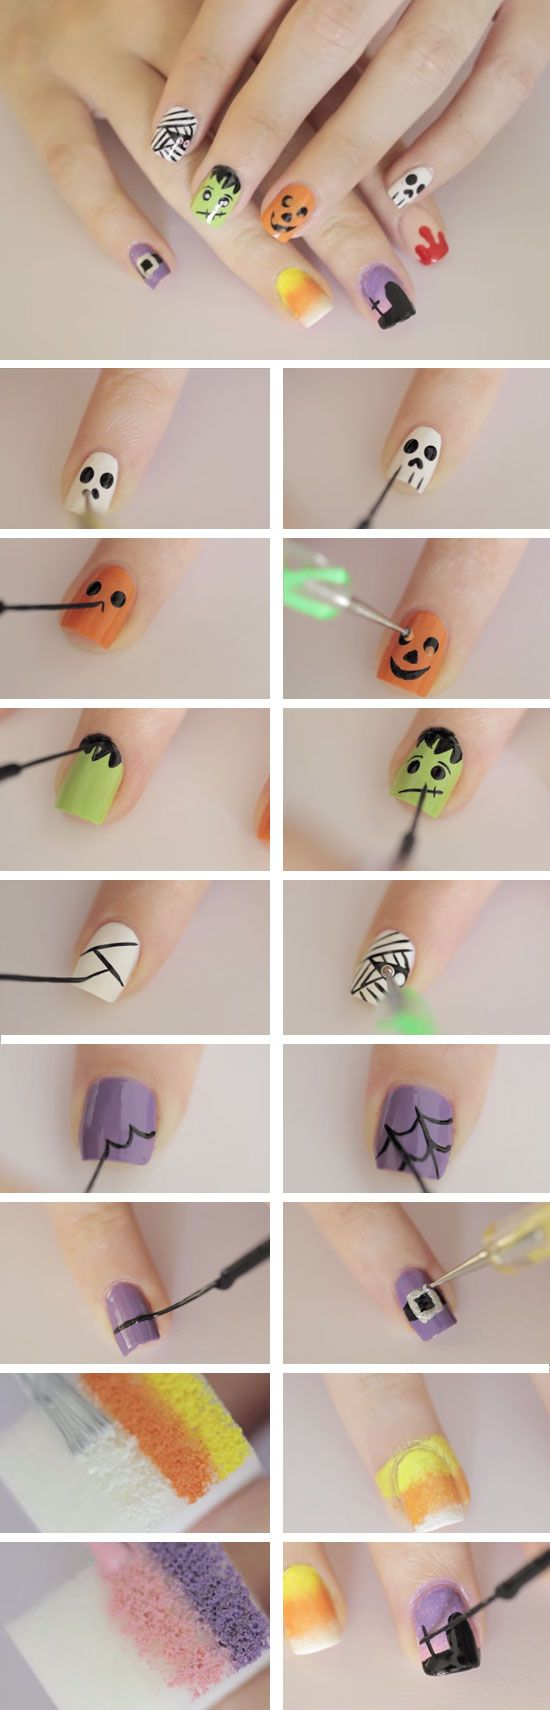 nail24 - 111 Nail Art Tutorials - Learn How To Do The Simple Ones To Intricate Details